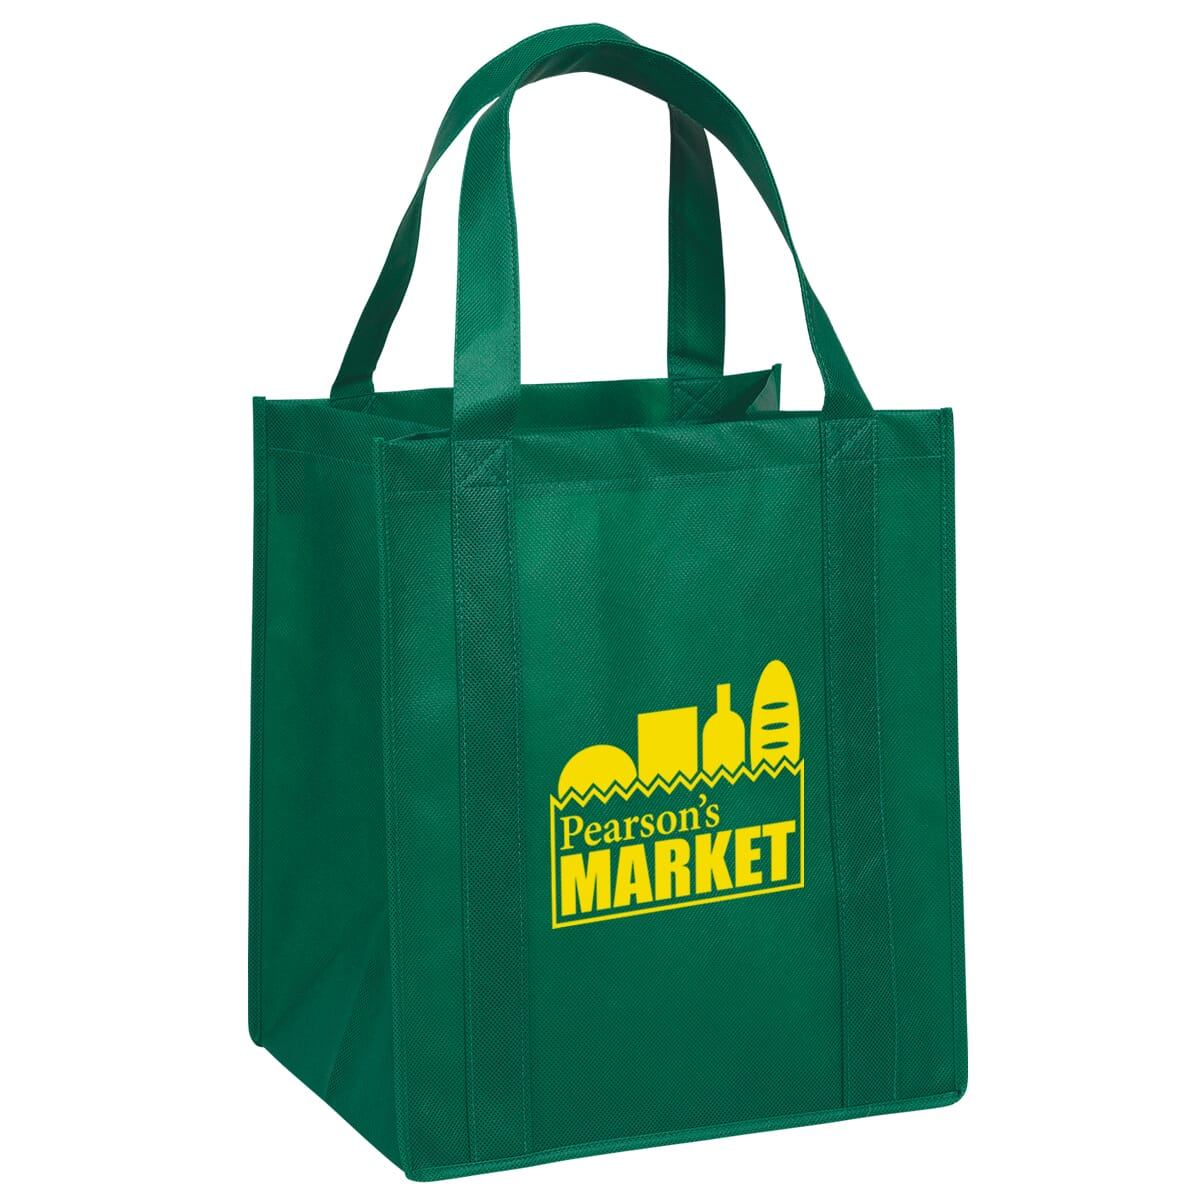 Reusable grocery tote bag with logo